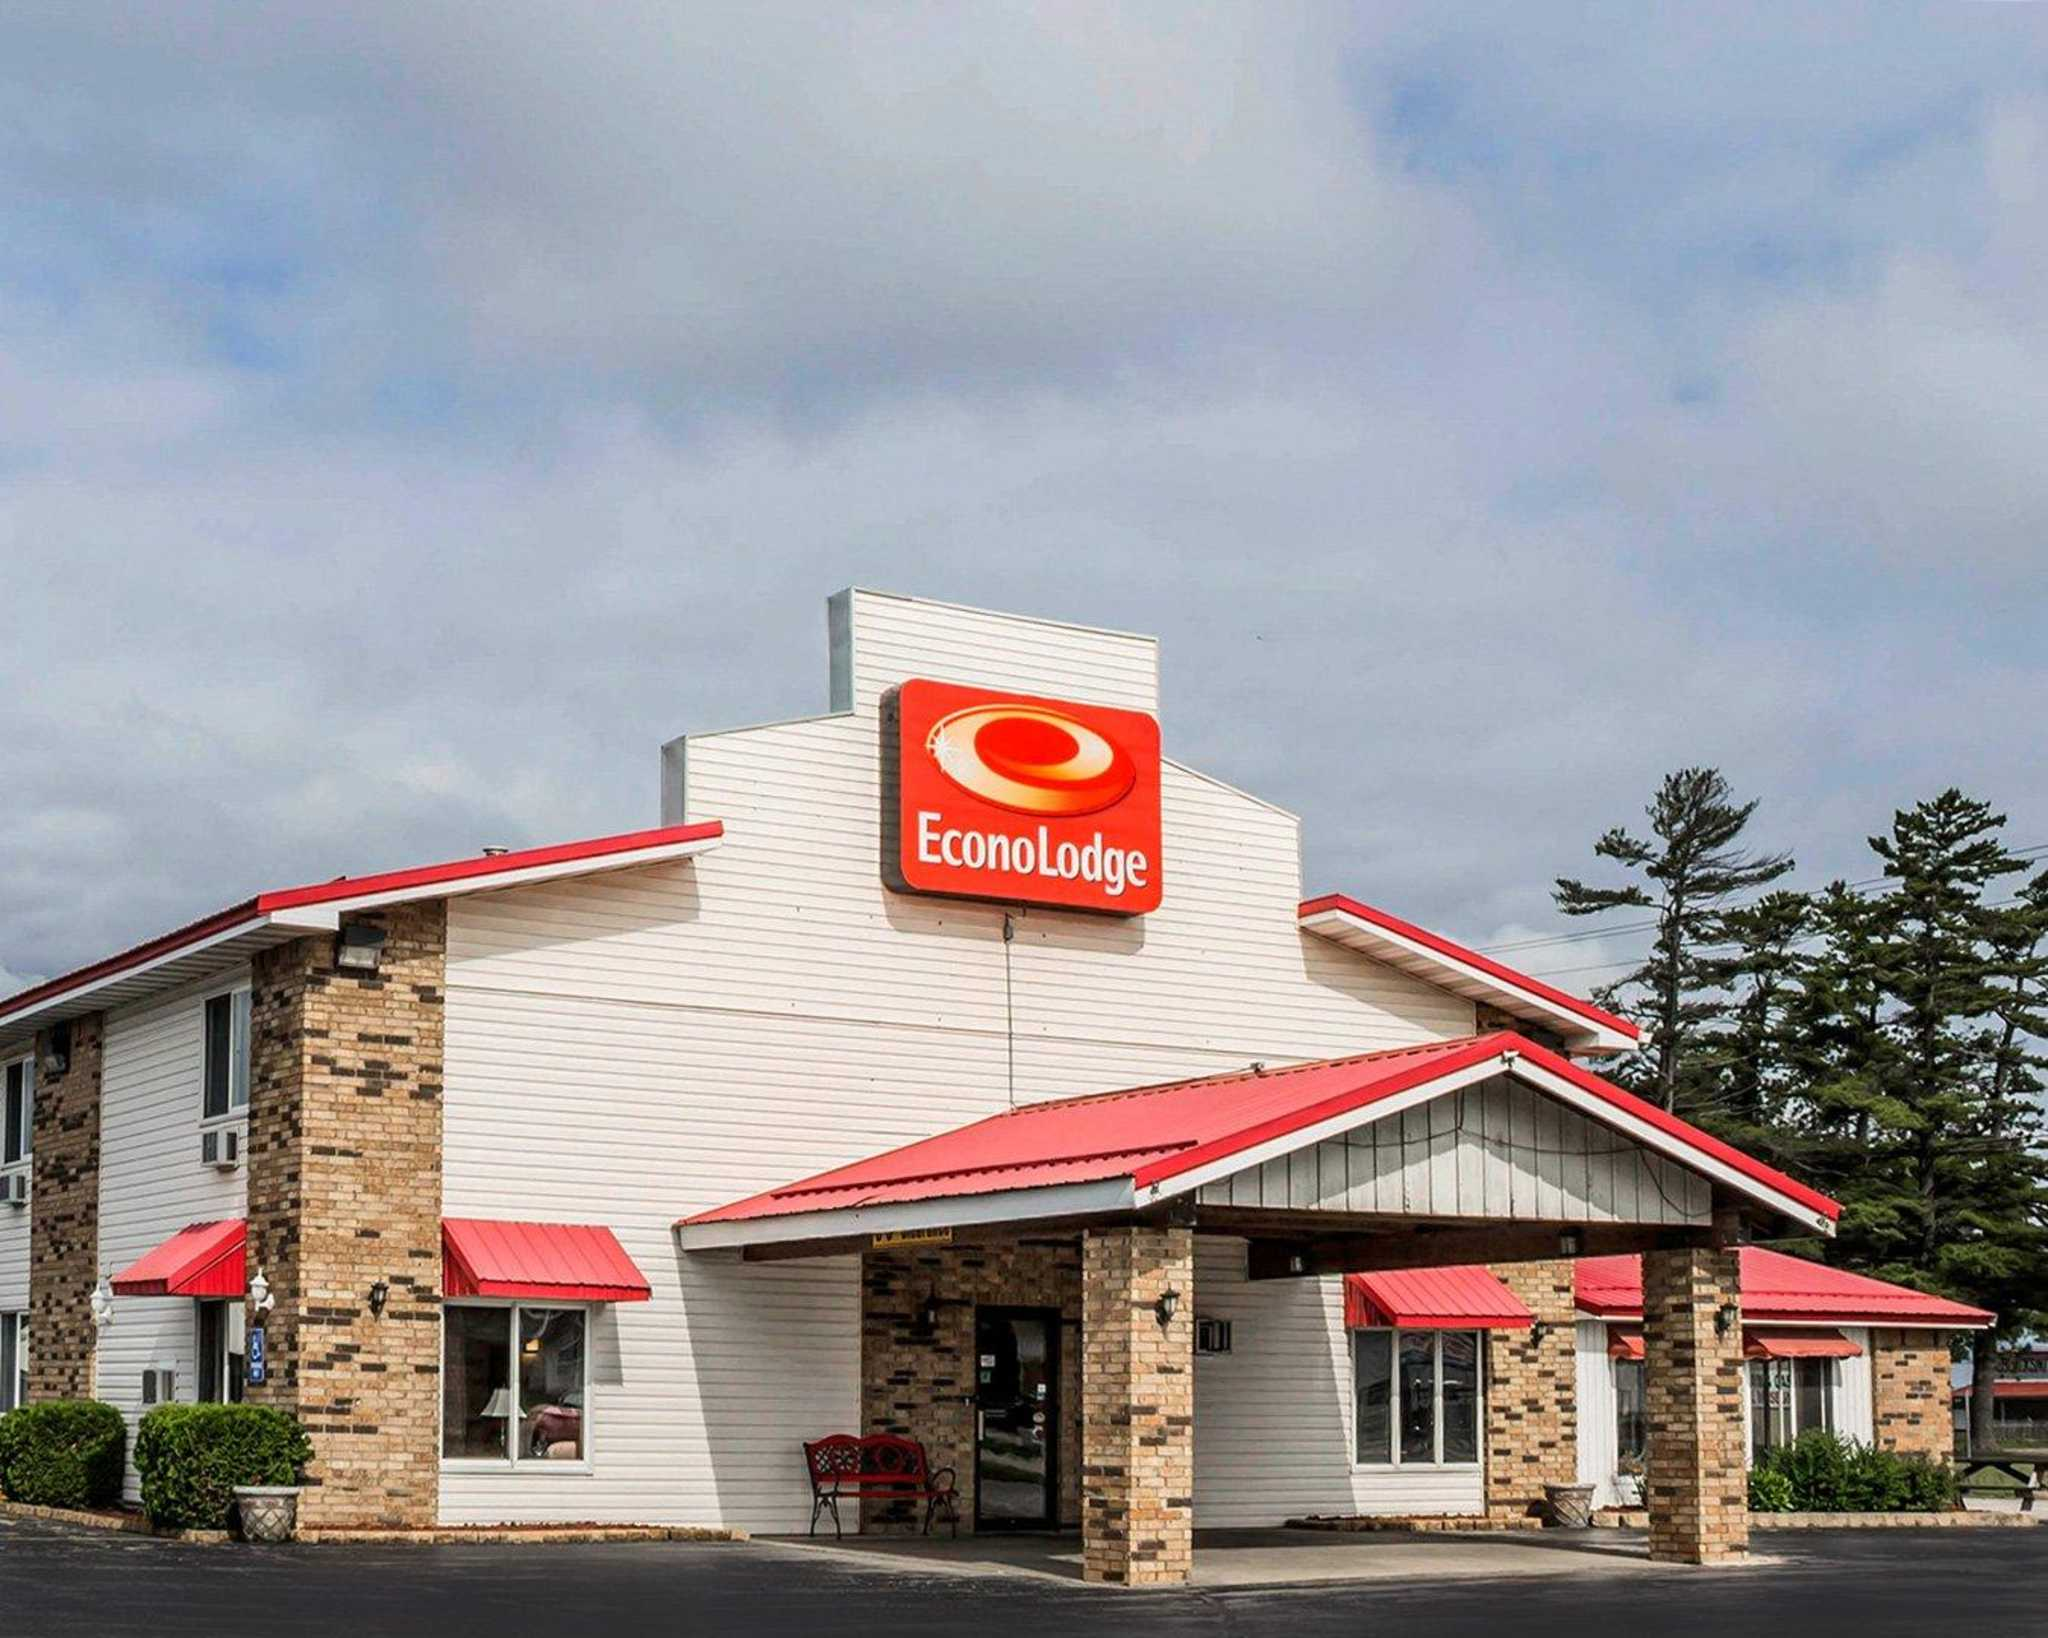 Econo Lodge At 921 N Lincoln Rd Escanaba Mi On Fave